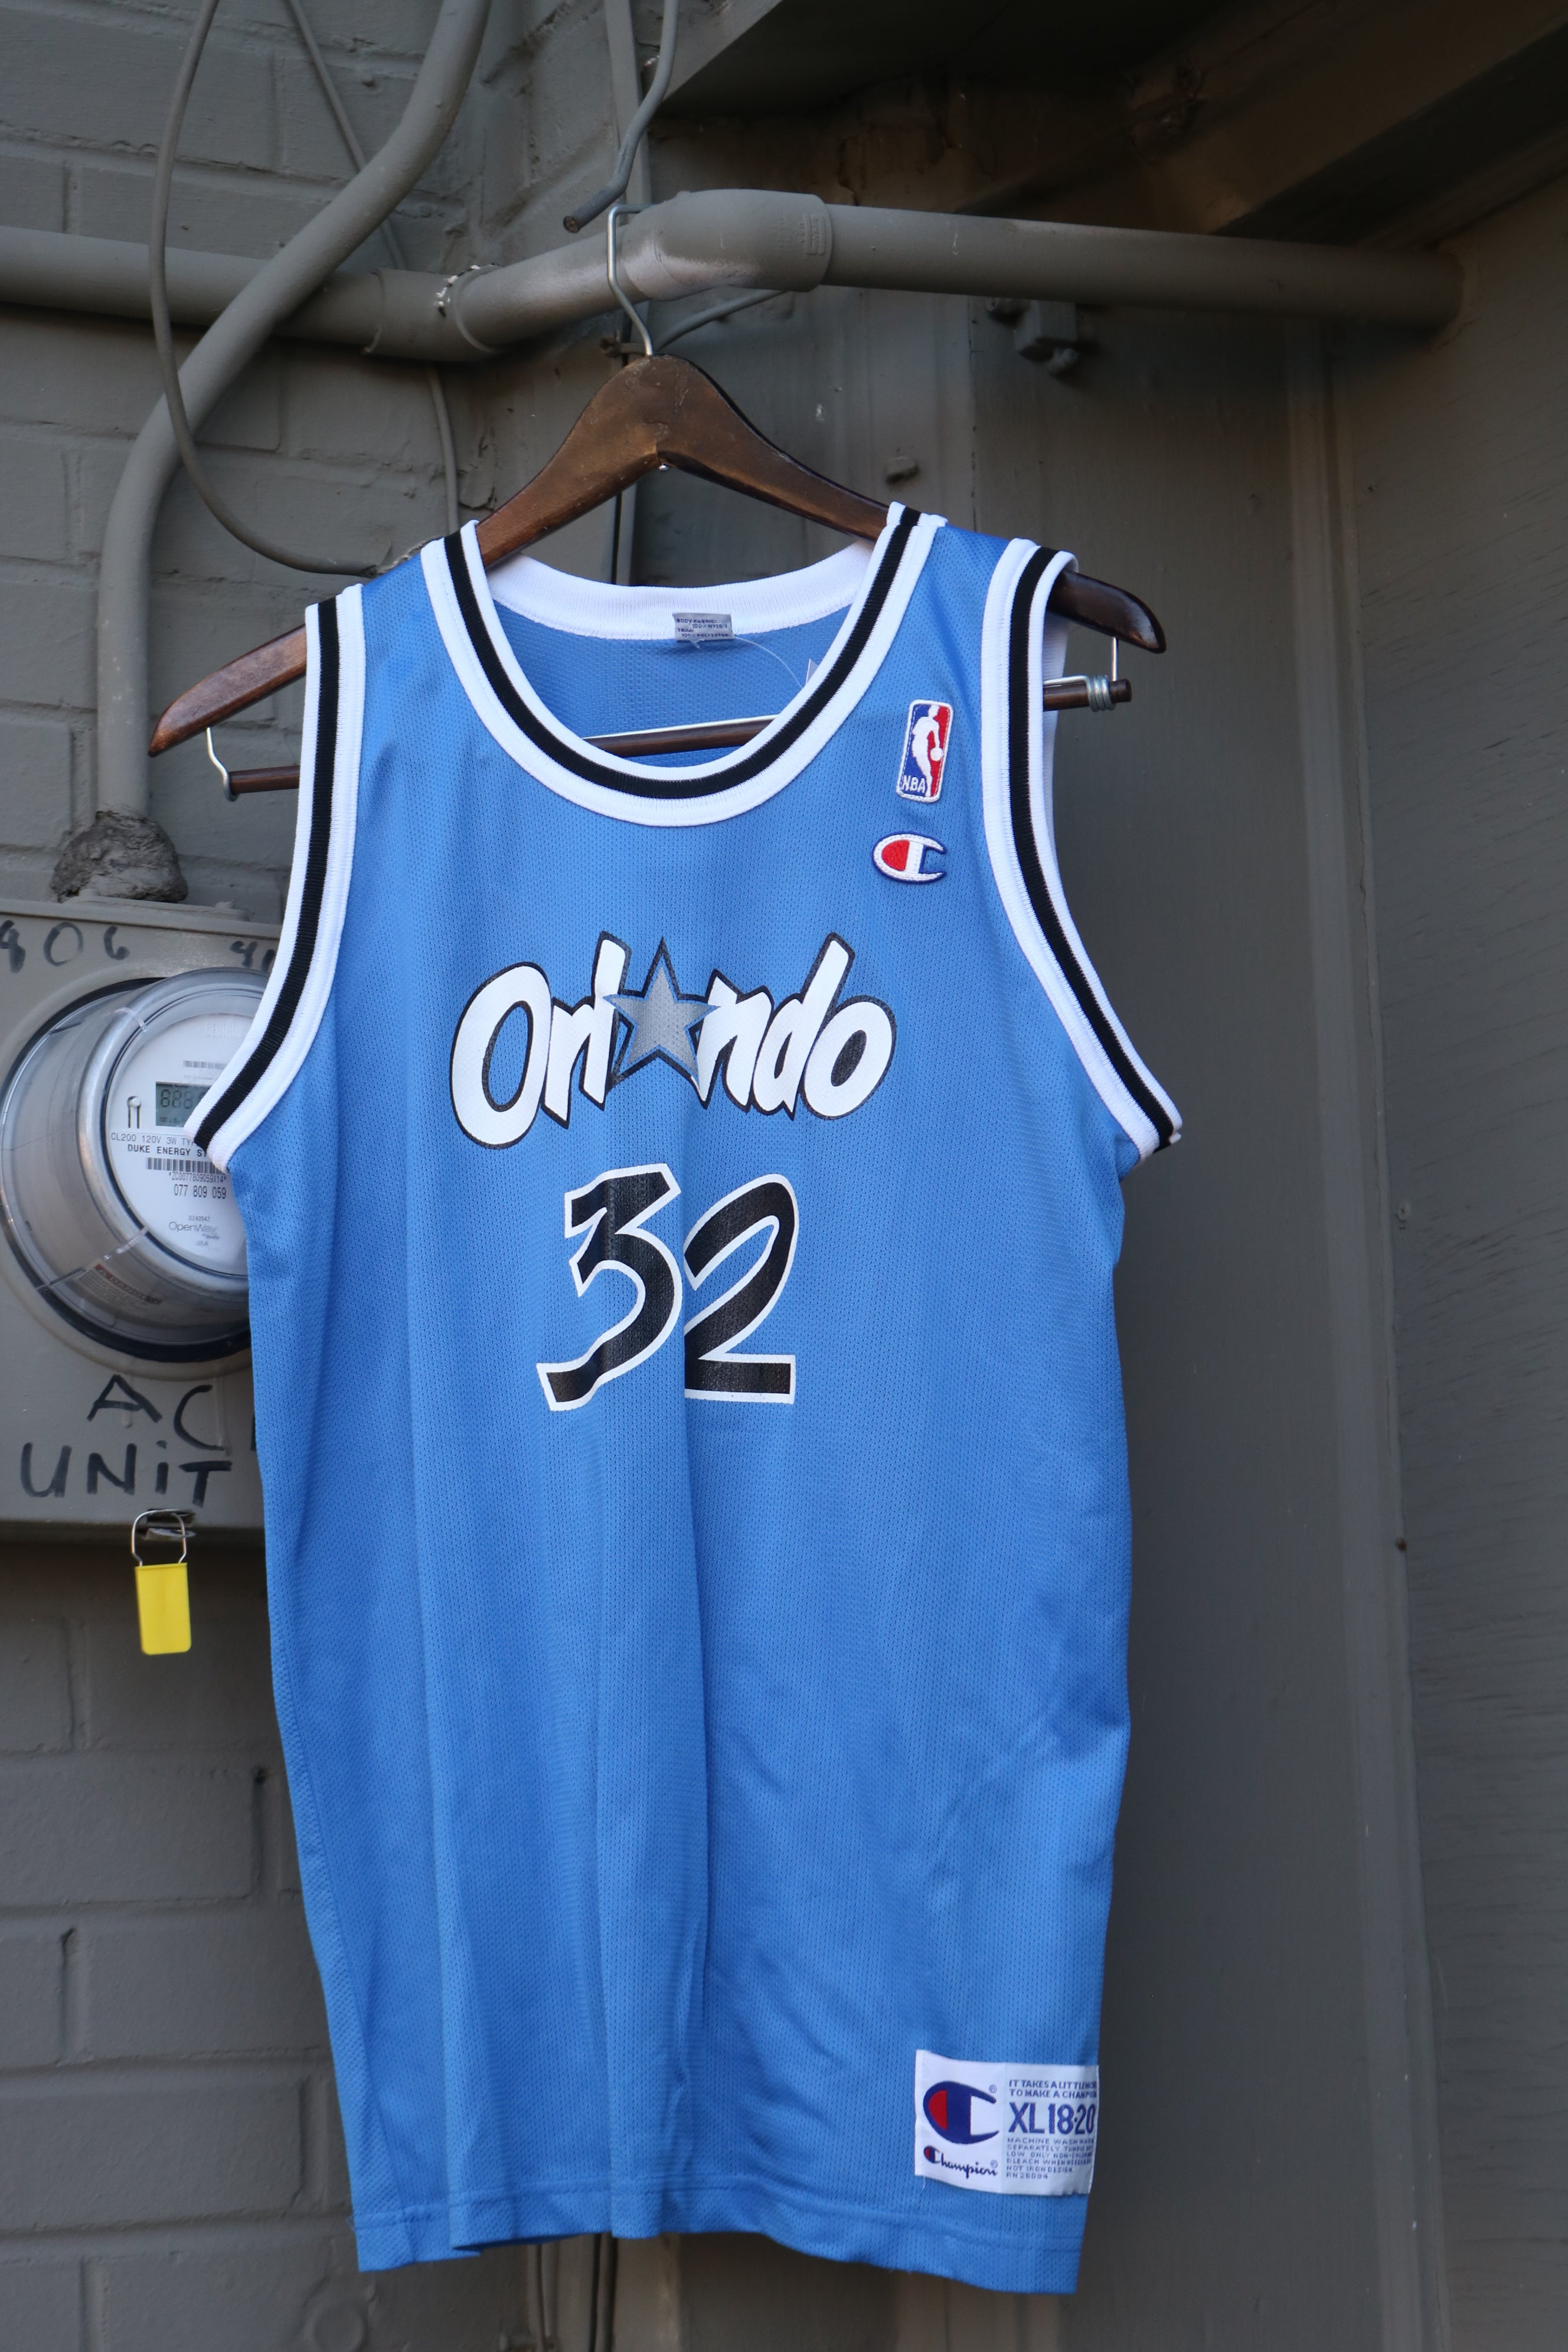 timeless design 9c3a8 18be0 ... discount code for image of rare 90s vintage champion shaquille oneal  orlando magic basketball jersey 8214c